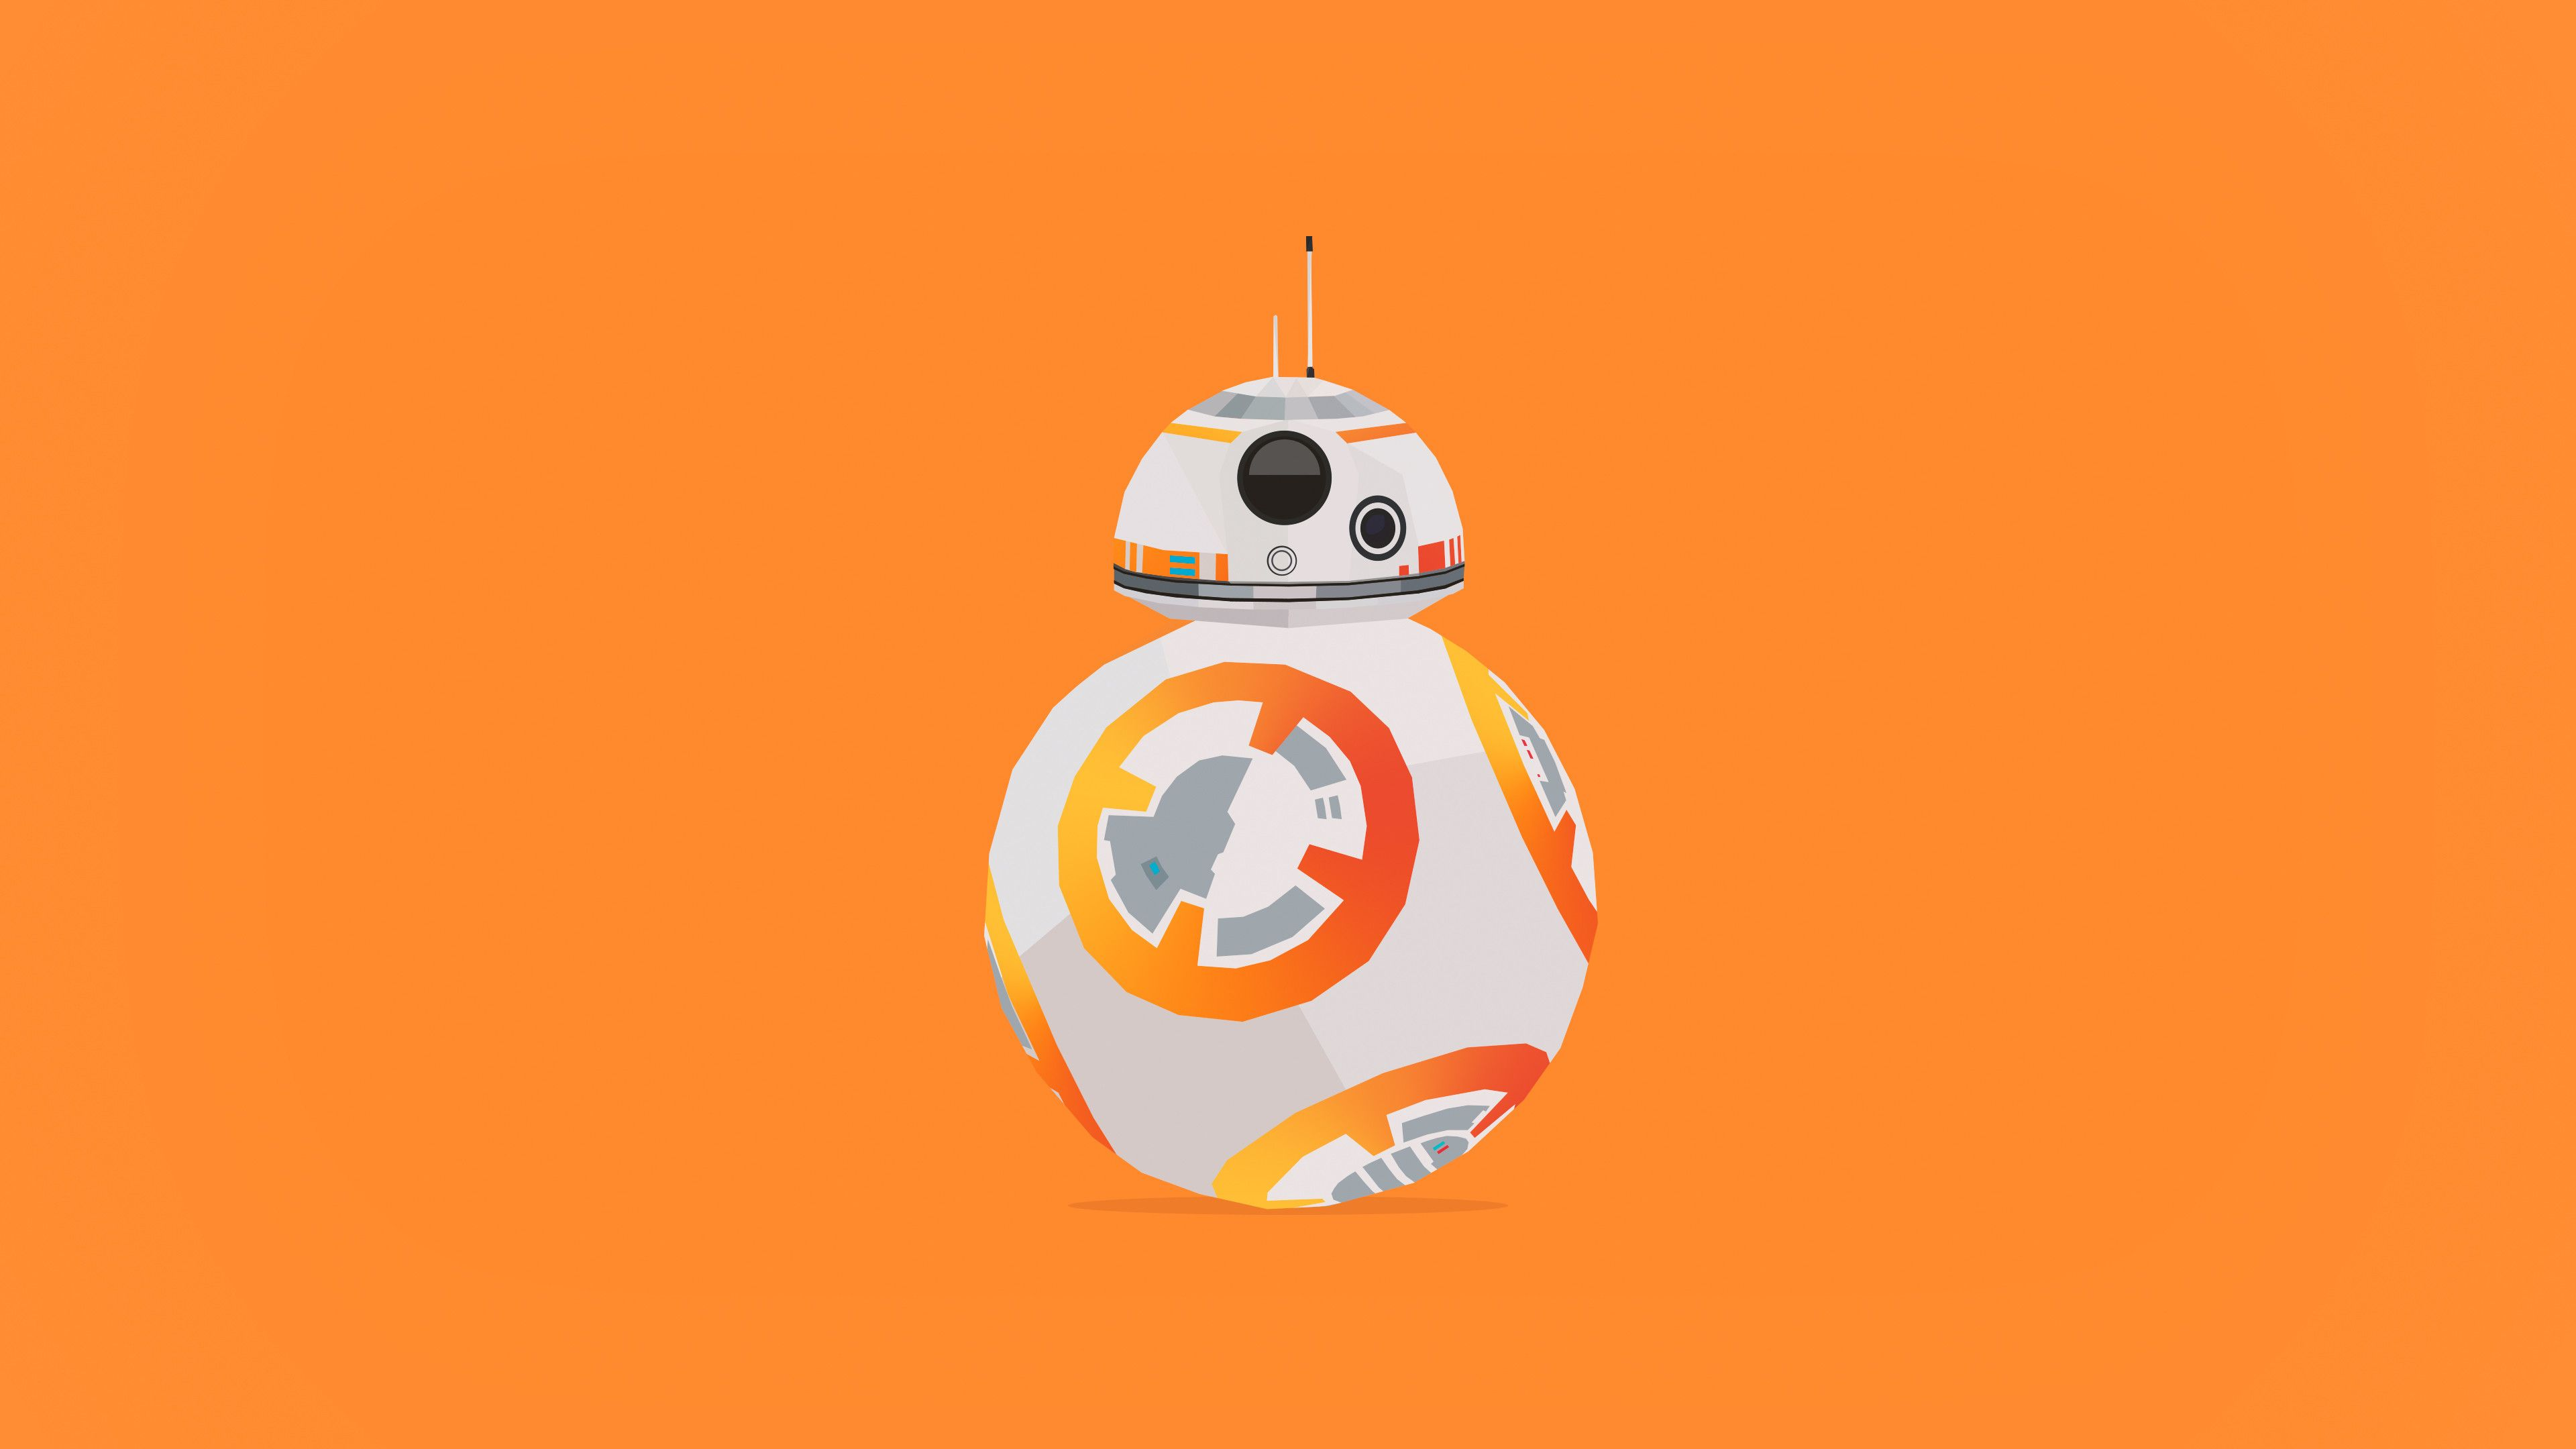 Bb 8 Wallpapers Top Free Bb 8 Backgrounds Wallpaperaccess